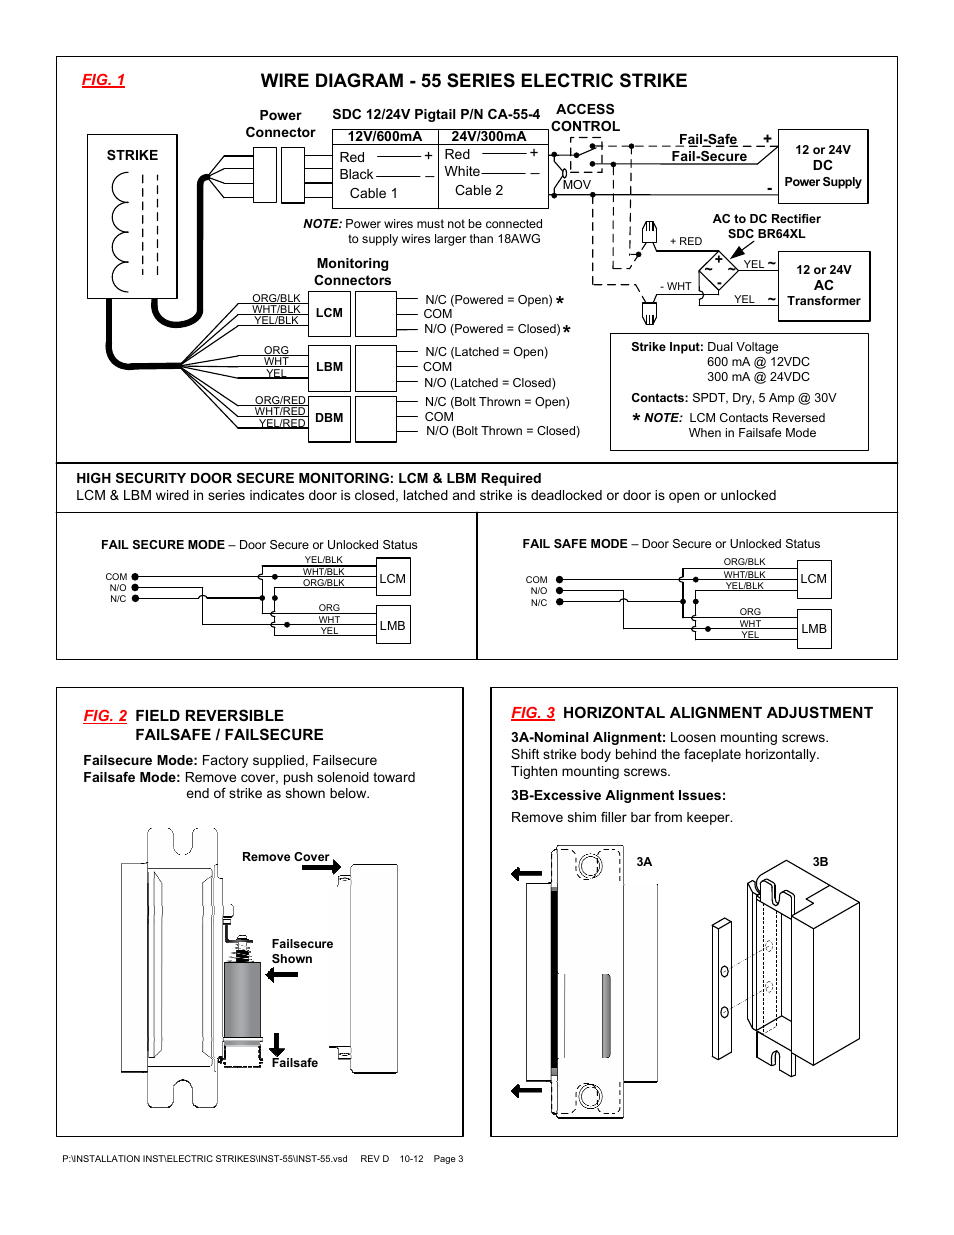 Wire Diagram 55 Series Electric Strike Sdc 24v Rectifier Wiring User Manual